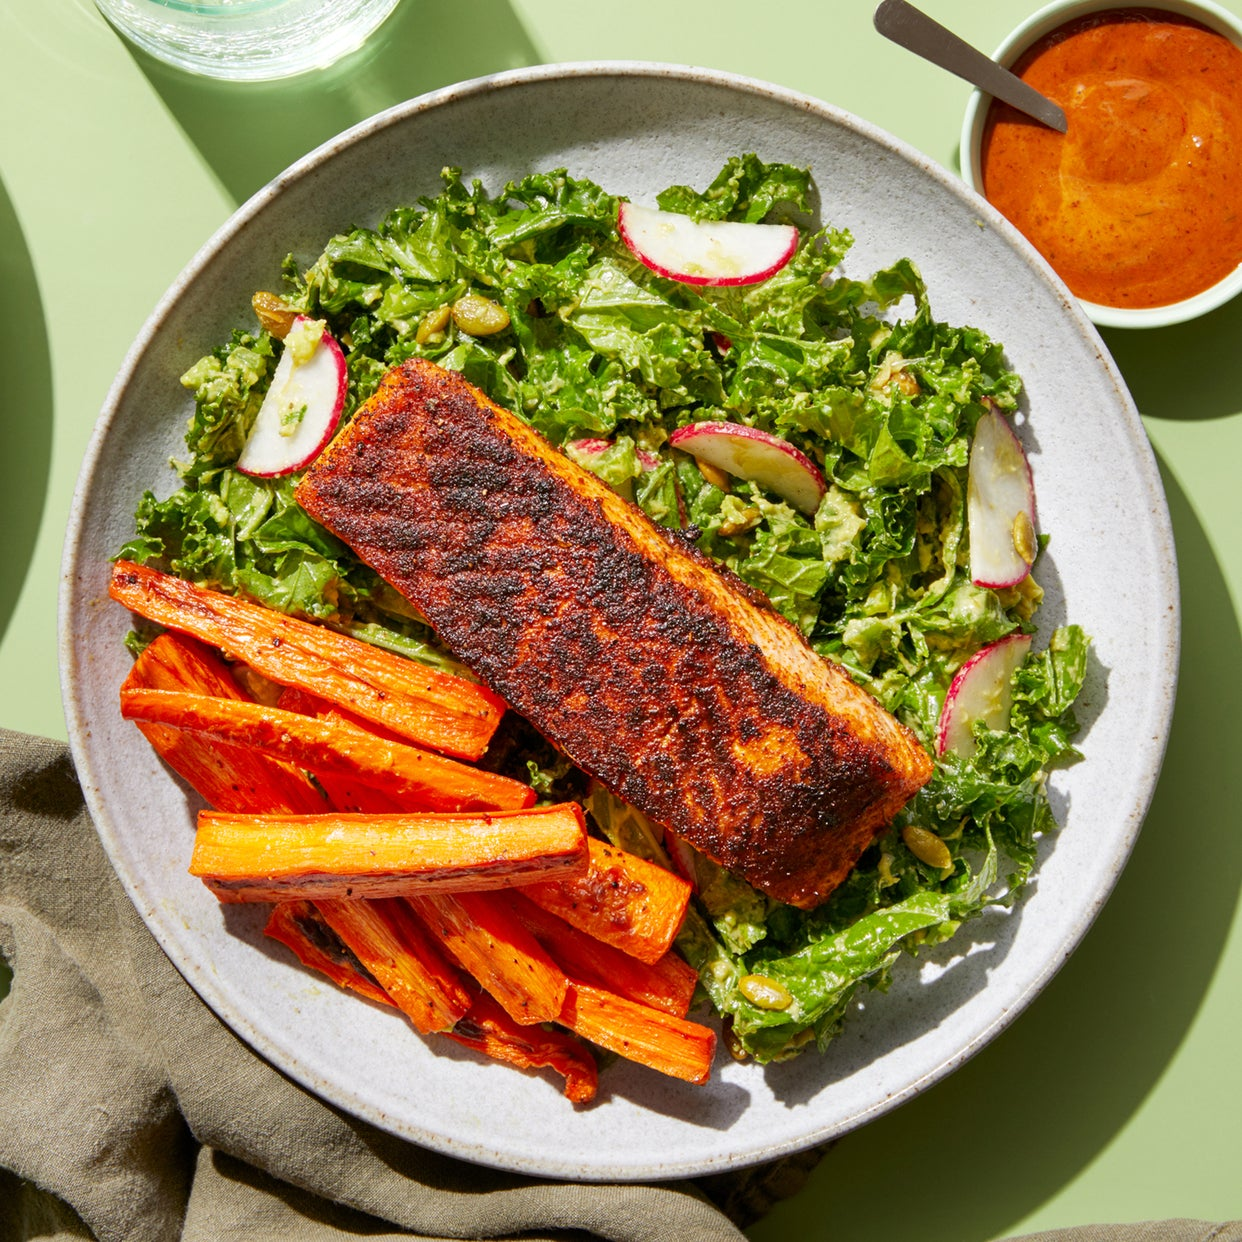 Spice-Crusted Salmon & Carrot Fries with Avocado-Kale Salad & Chipotle Dipping Sauce